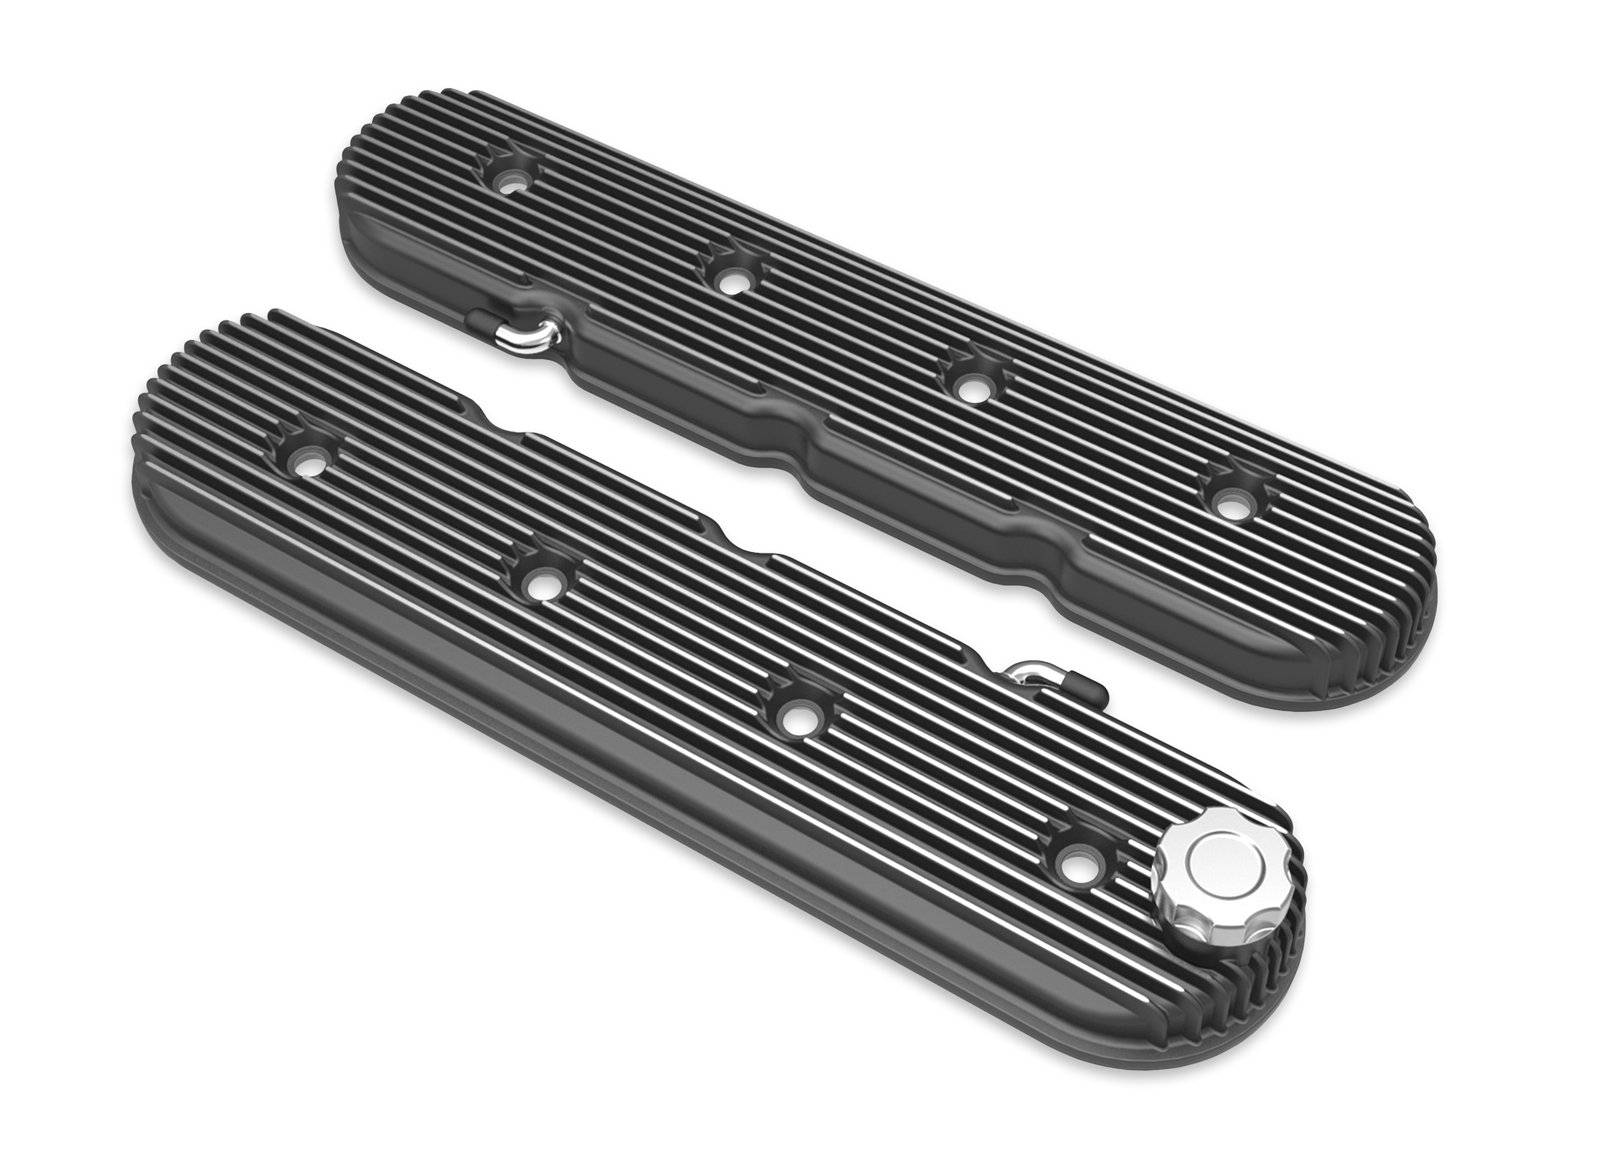 Vintage Series Finned LS Valve Covers, Standard Height - Satin Black  Machined Finish